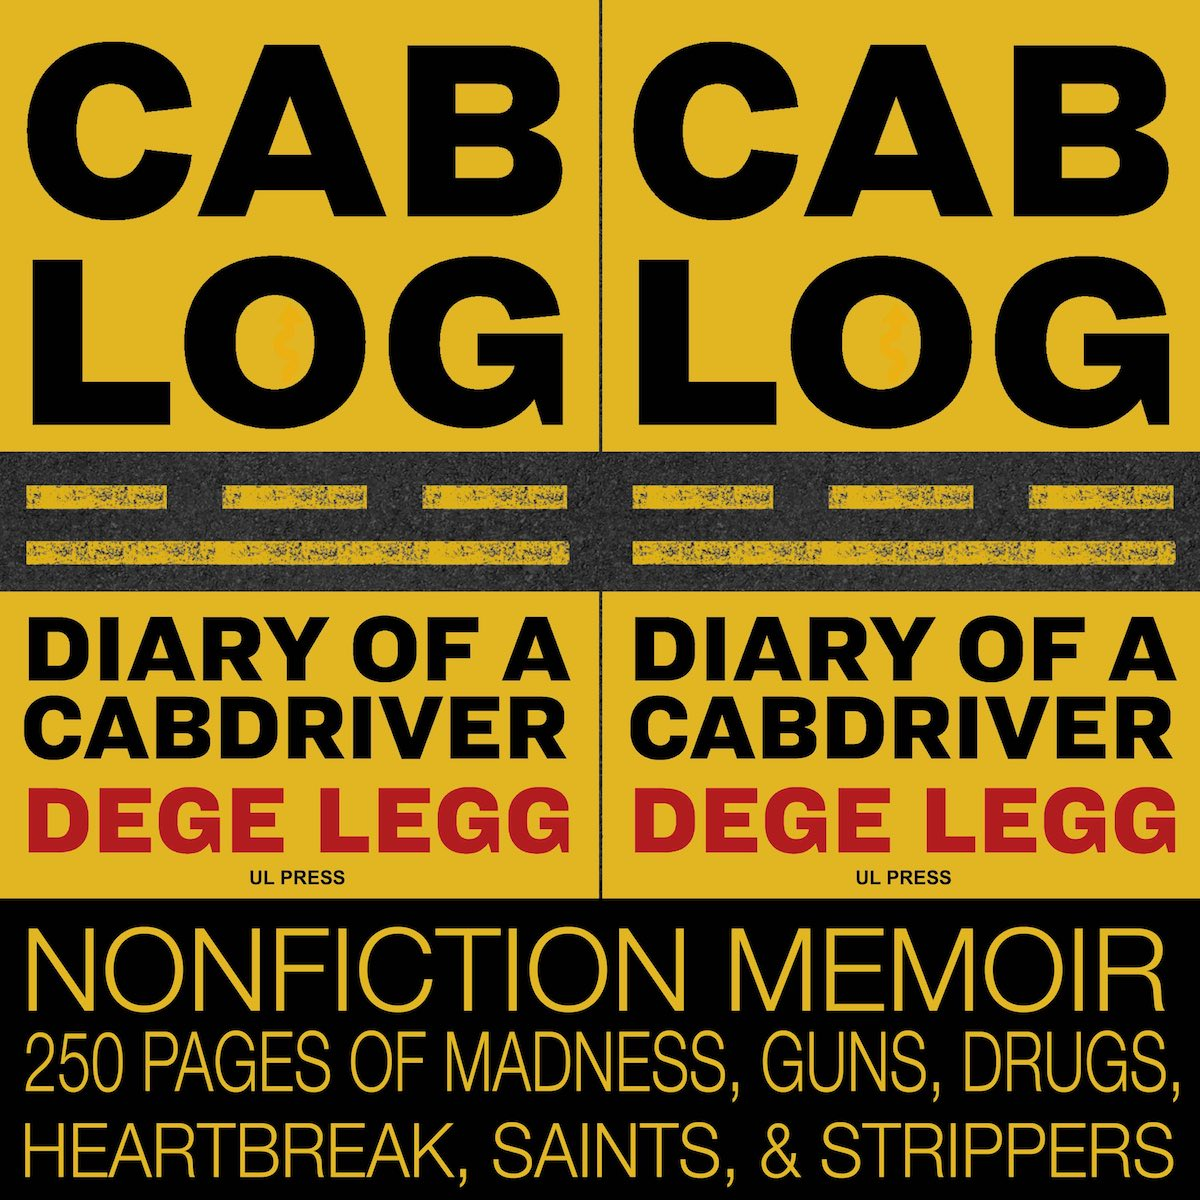 Cablog - a nonfiction memoir by Dege Legg